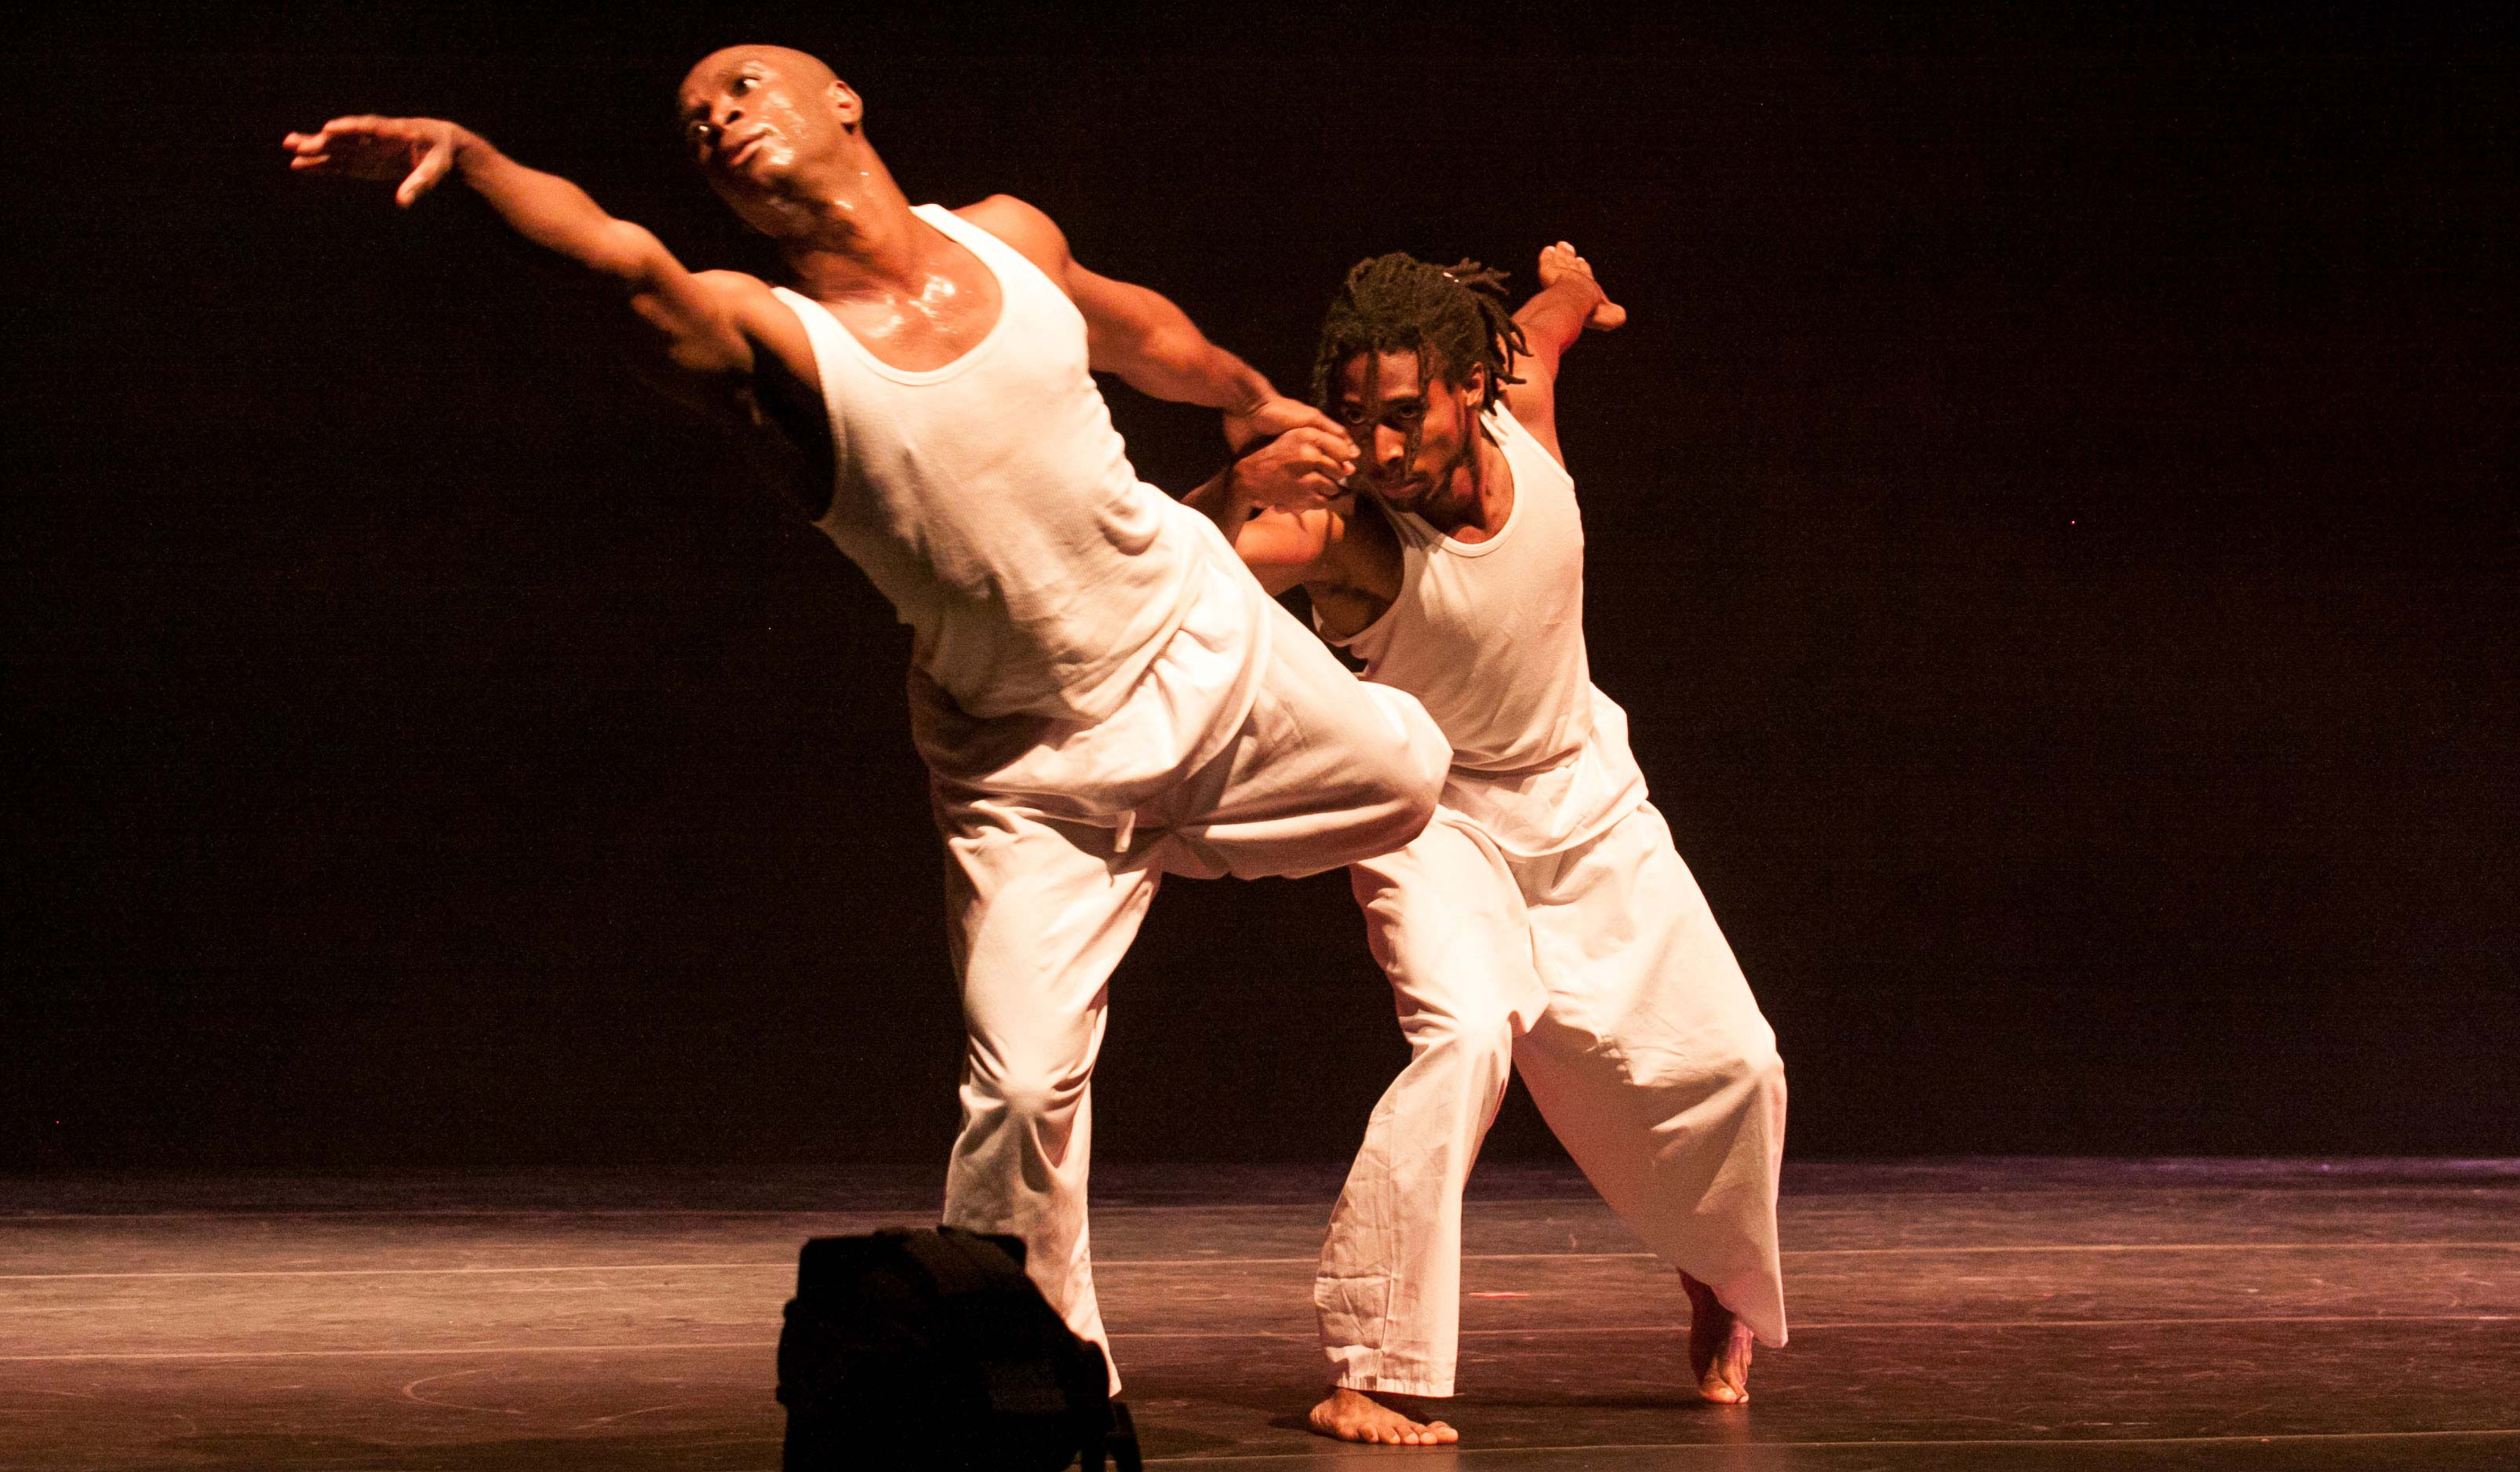 Leading male dancers, Kevin Jack and Kwasi Romero, perform Allan Balfour's piece, Ties, during NDDCI's 2012 dance season, Transition. Photo courtesy Mark Gellineau for the NDDCI.